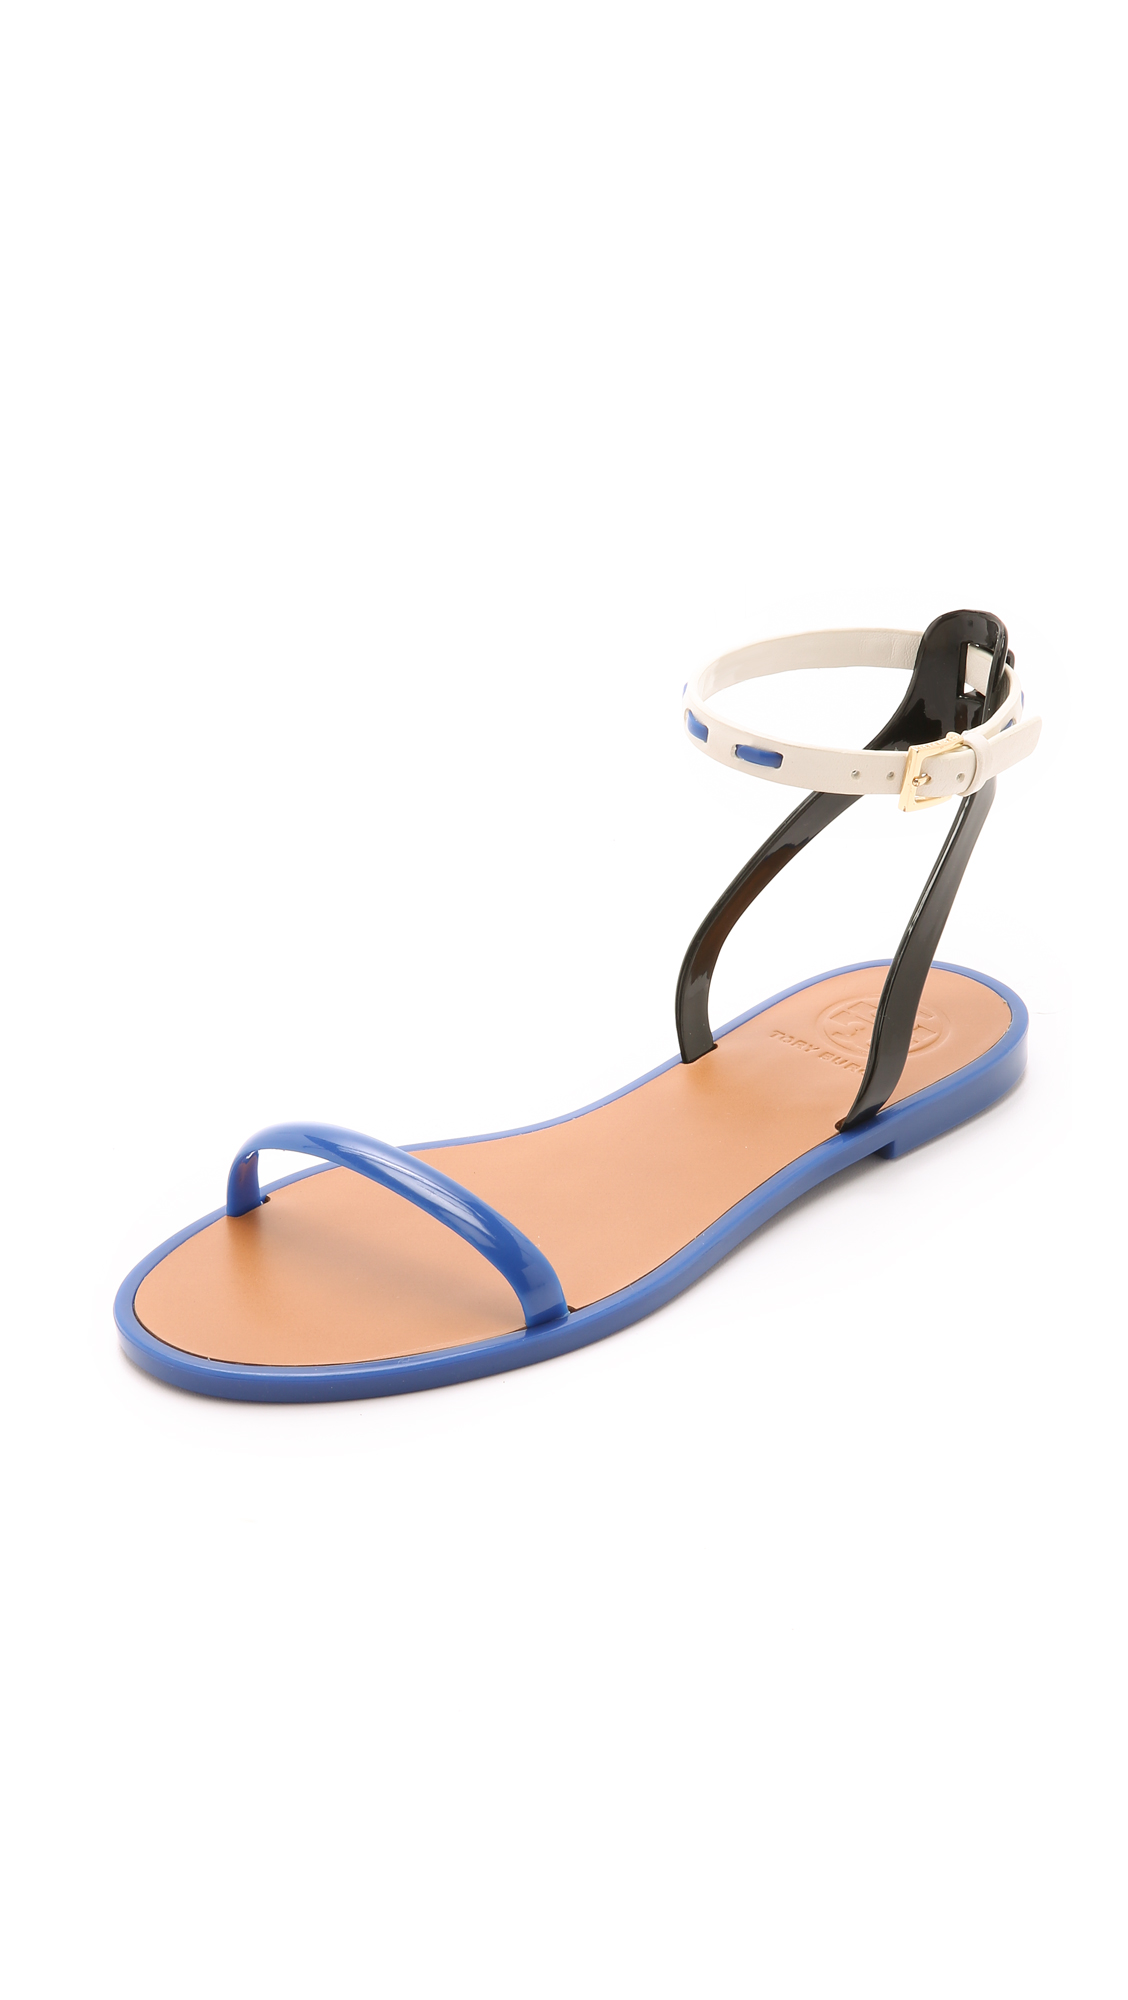 Sale Latest Tory Burch Leather Ankle Strap Sandals Pay With Visa Cheap Online Cheap Shop Offer Cheap For Nice Clearance Pre Order SrKLnTM0